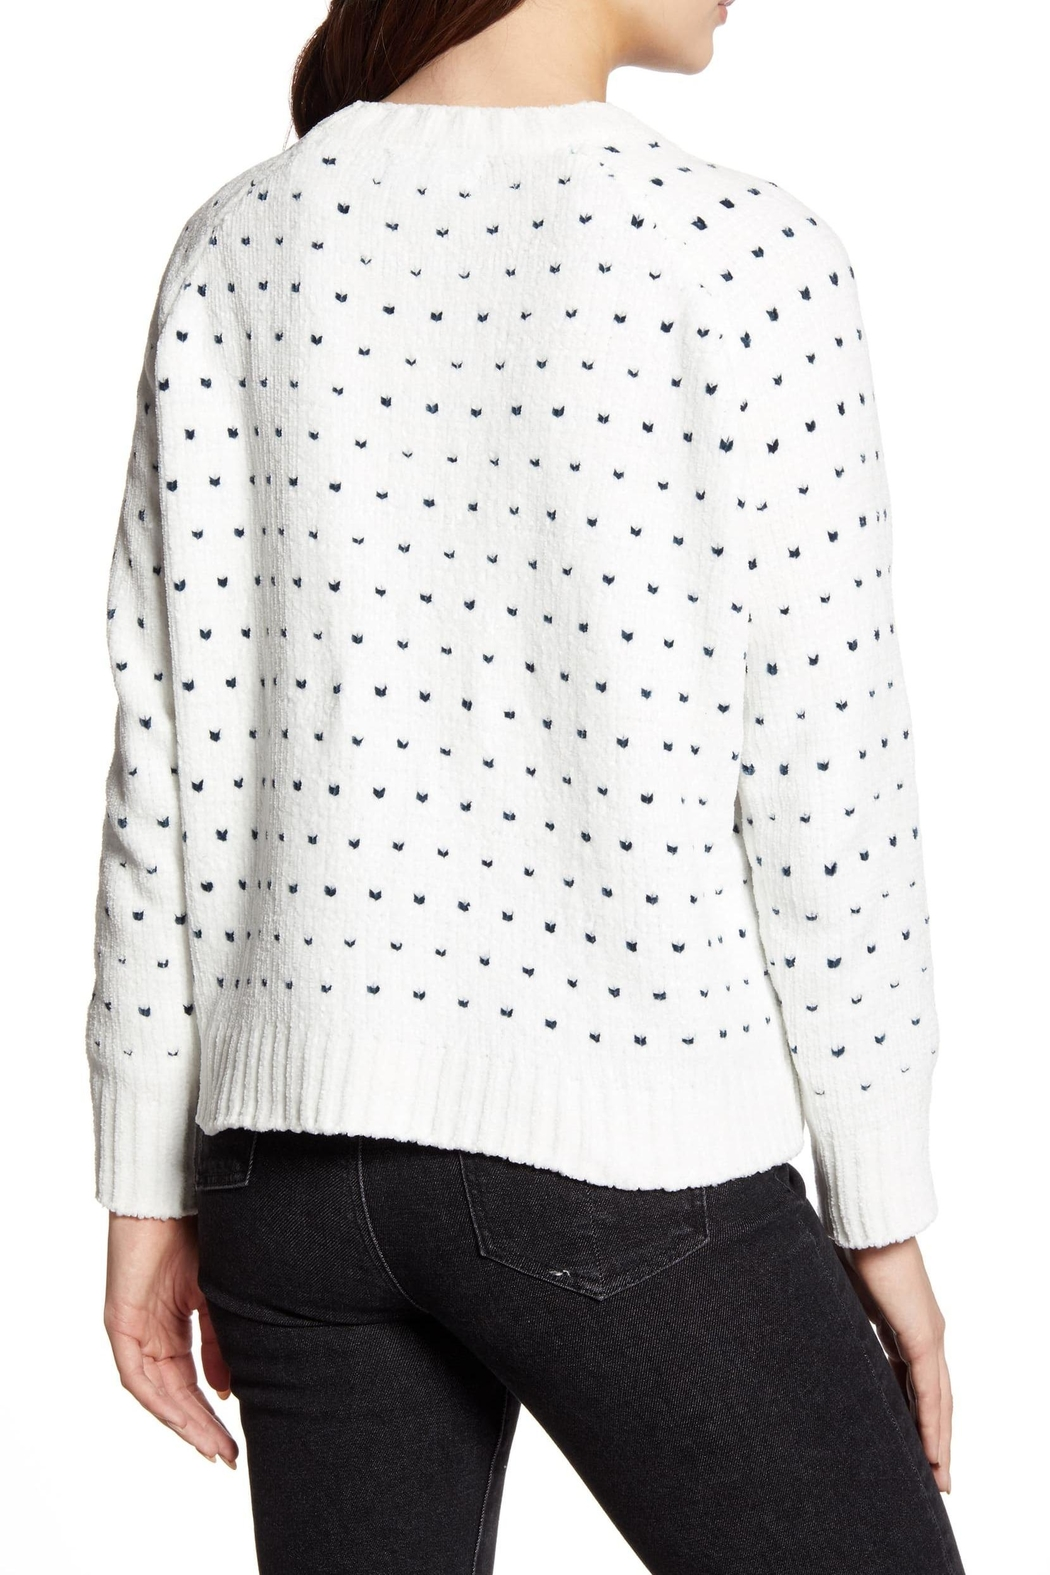 MINKPINK Your Heart Sweater - Front Full Image